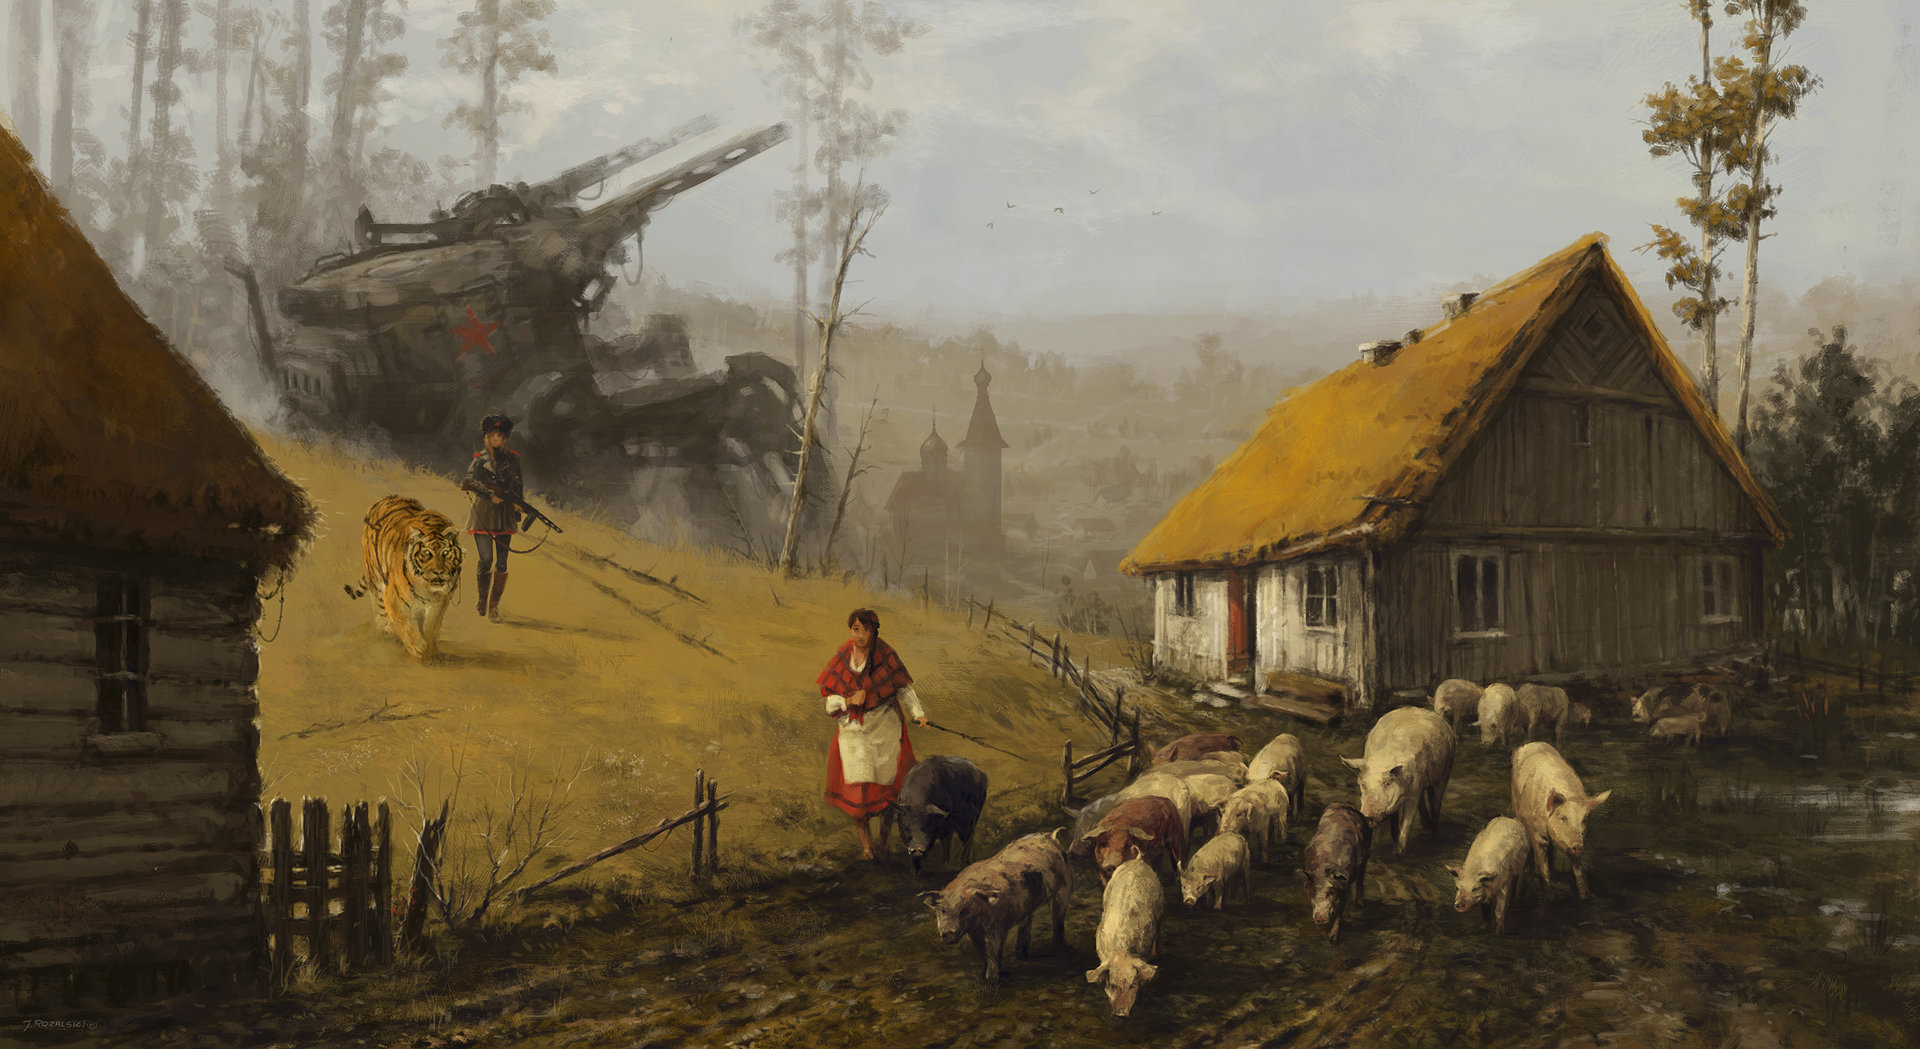 Jakub rozalski 1920 strong temptation small